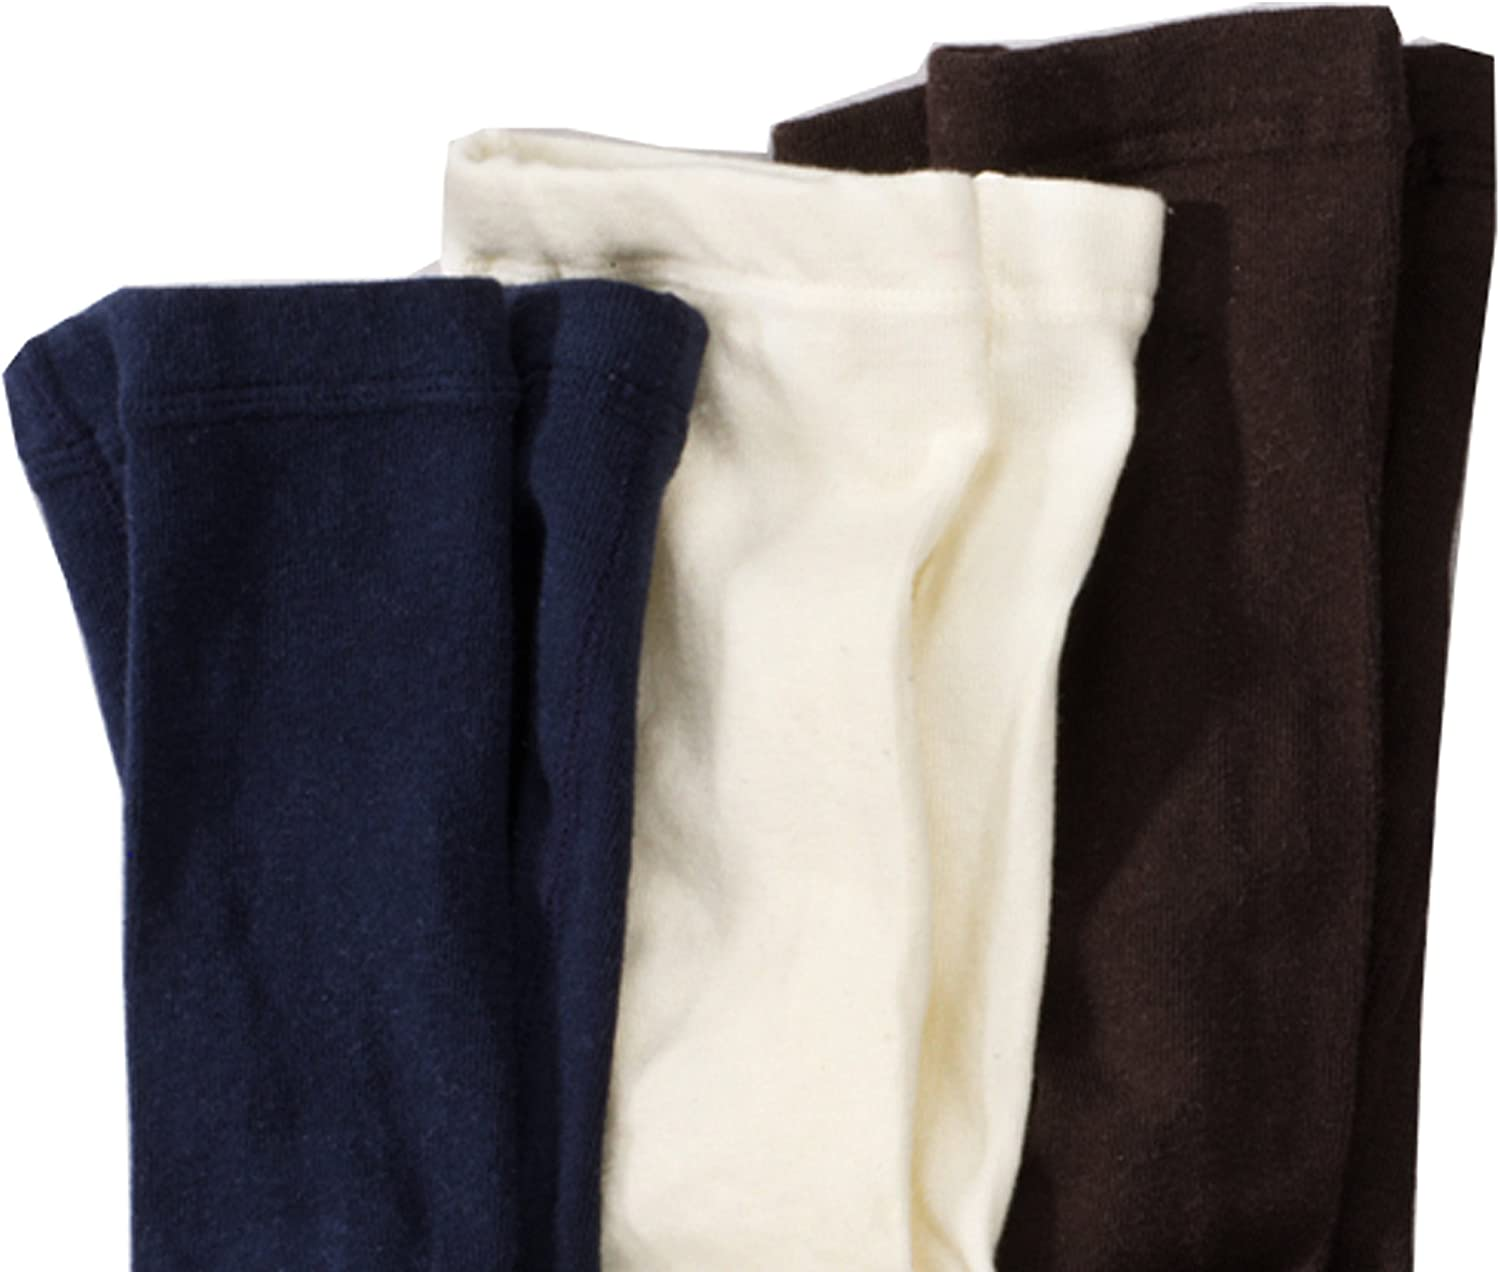 Baby tights- 3 Pack Navy uni Leggings Solid Colours Brown Size 62-146 Ecru Wellyou kids Childrens Girls and Boys Tights